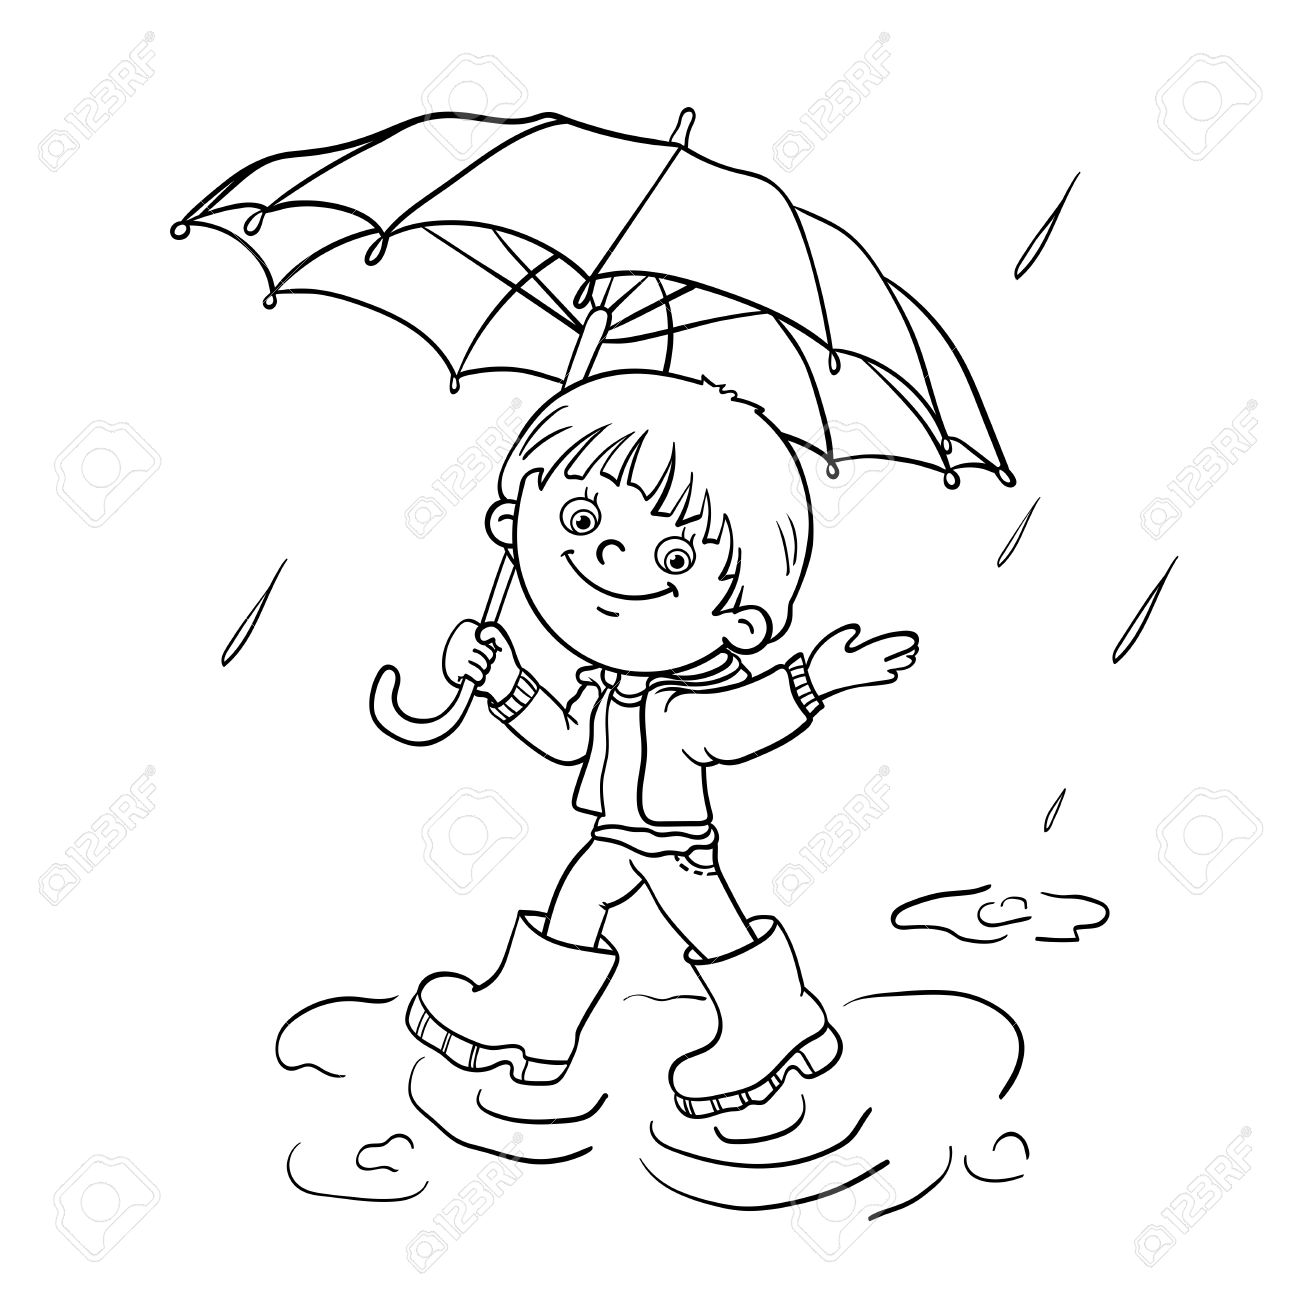 1300x1300 Coloring Page Outline Of A Cartoon Joyful Boy Walking In The Rain